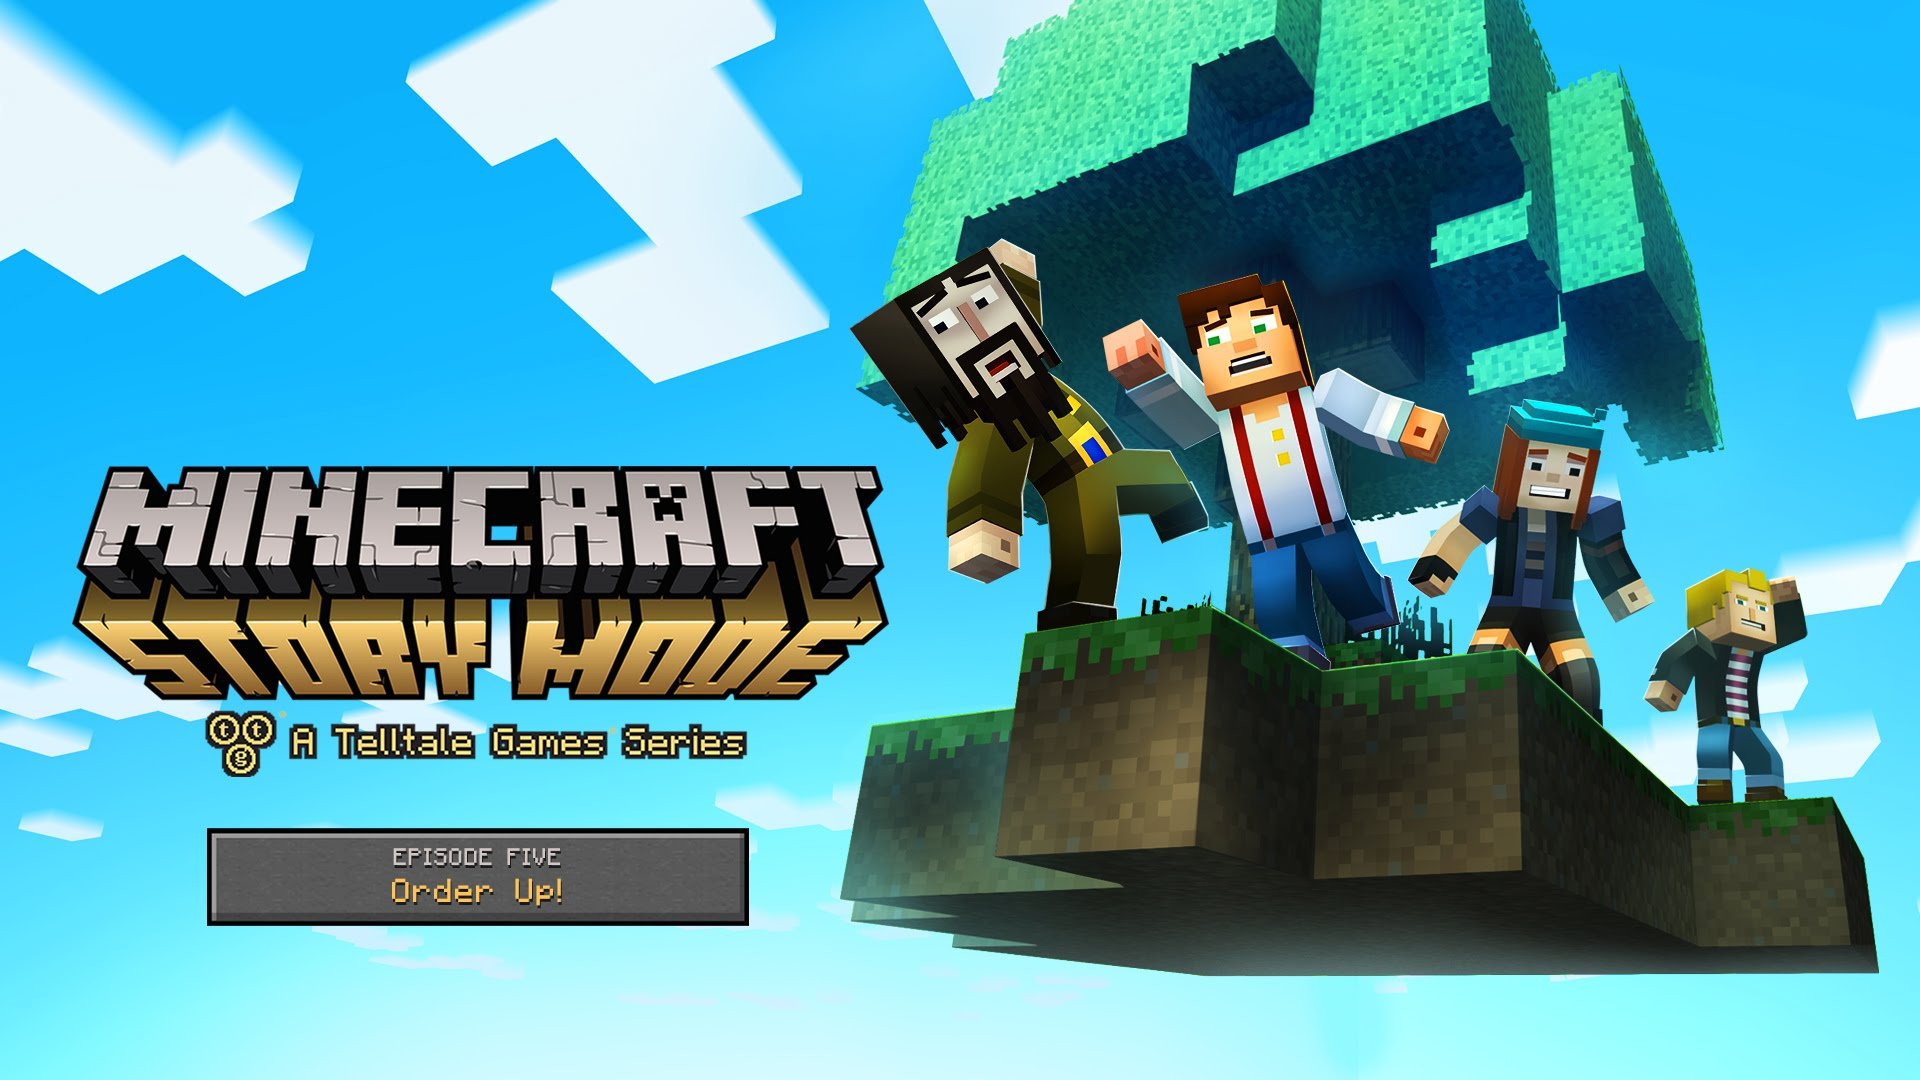 Order Up Episode 5 Of Minecraft Story Mode Today Minecrafters